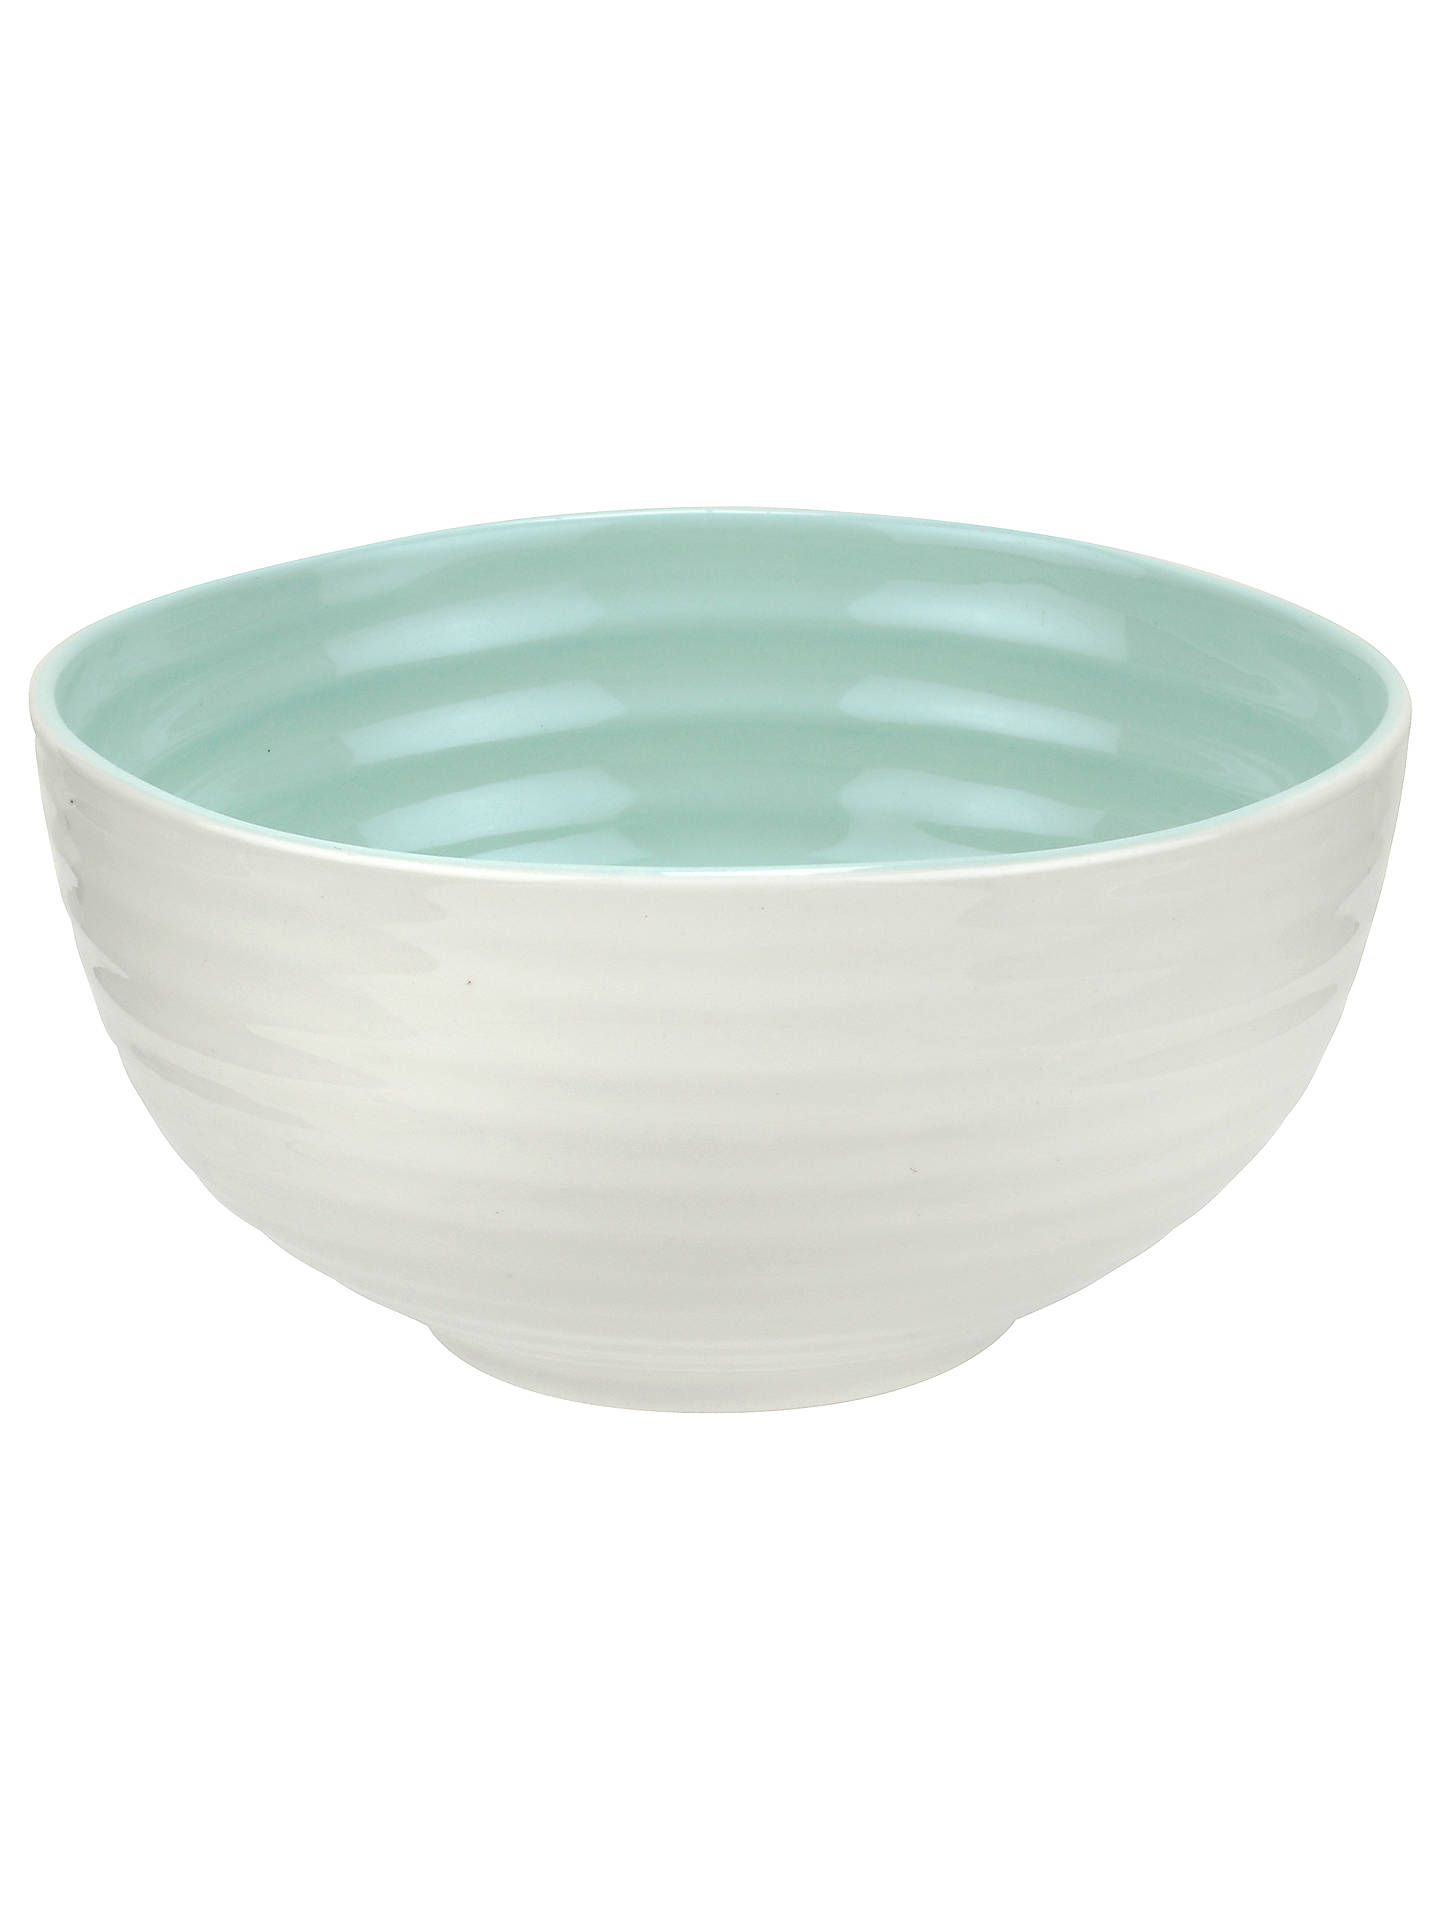 BuySophie Conran for Portmeirion Bowl, Dia.14cm, Celadon Online at johnlewis.com